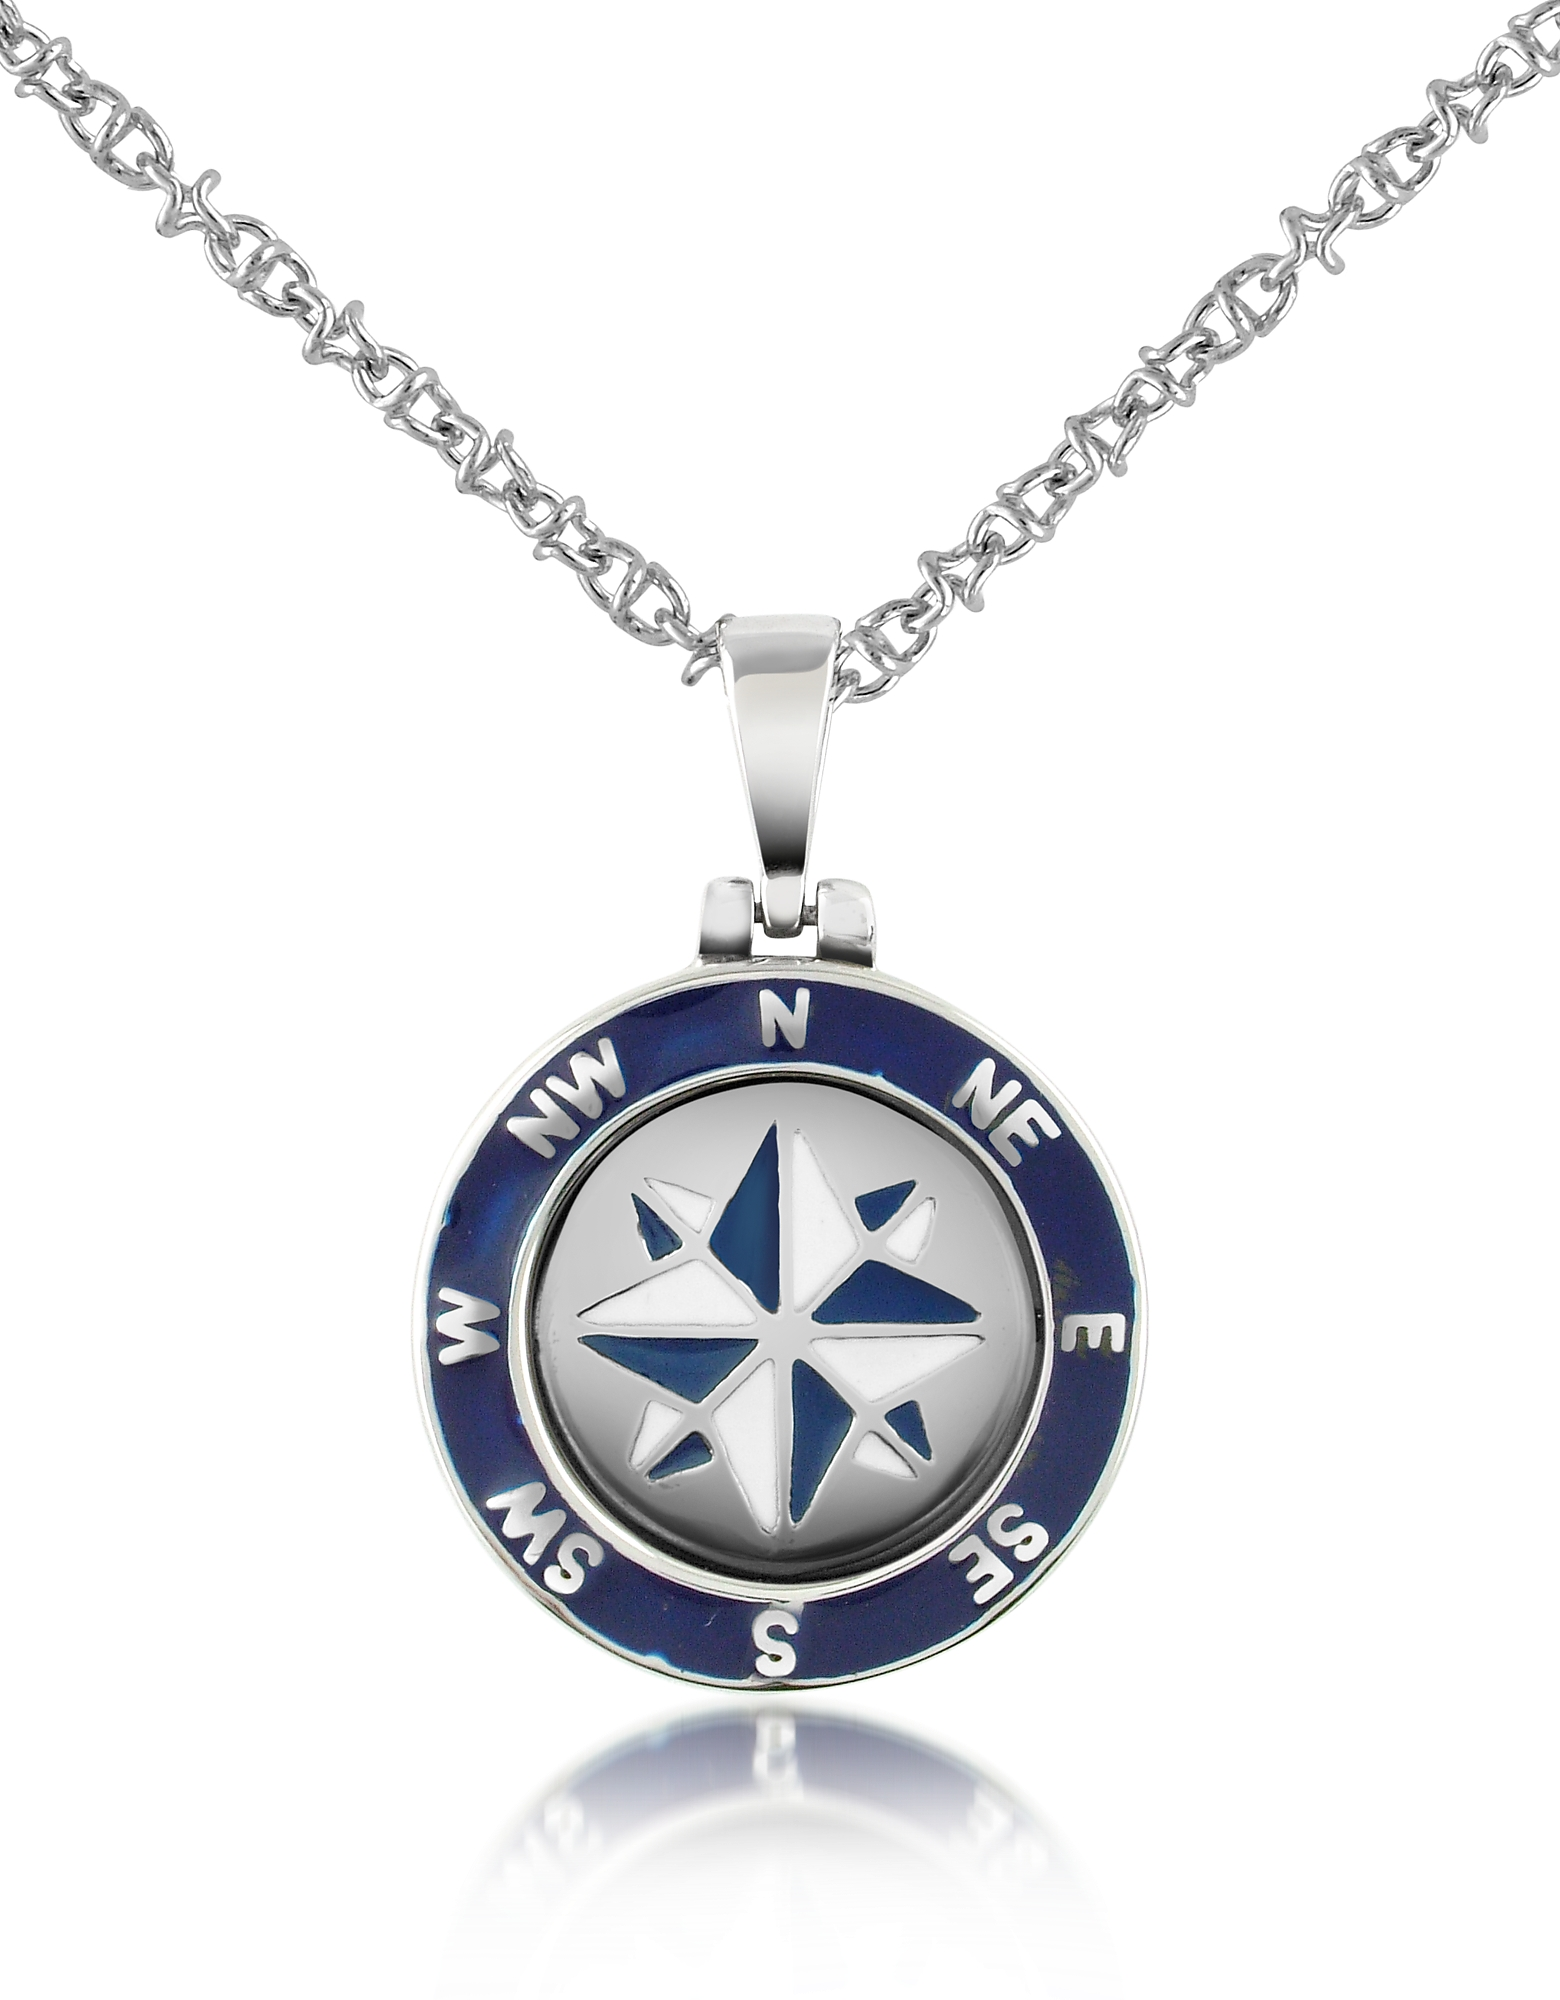 Forzieri Men's Necklaces, Stainless Steel Windrose Pendant Necklace